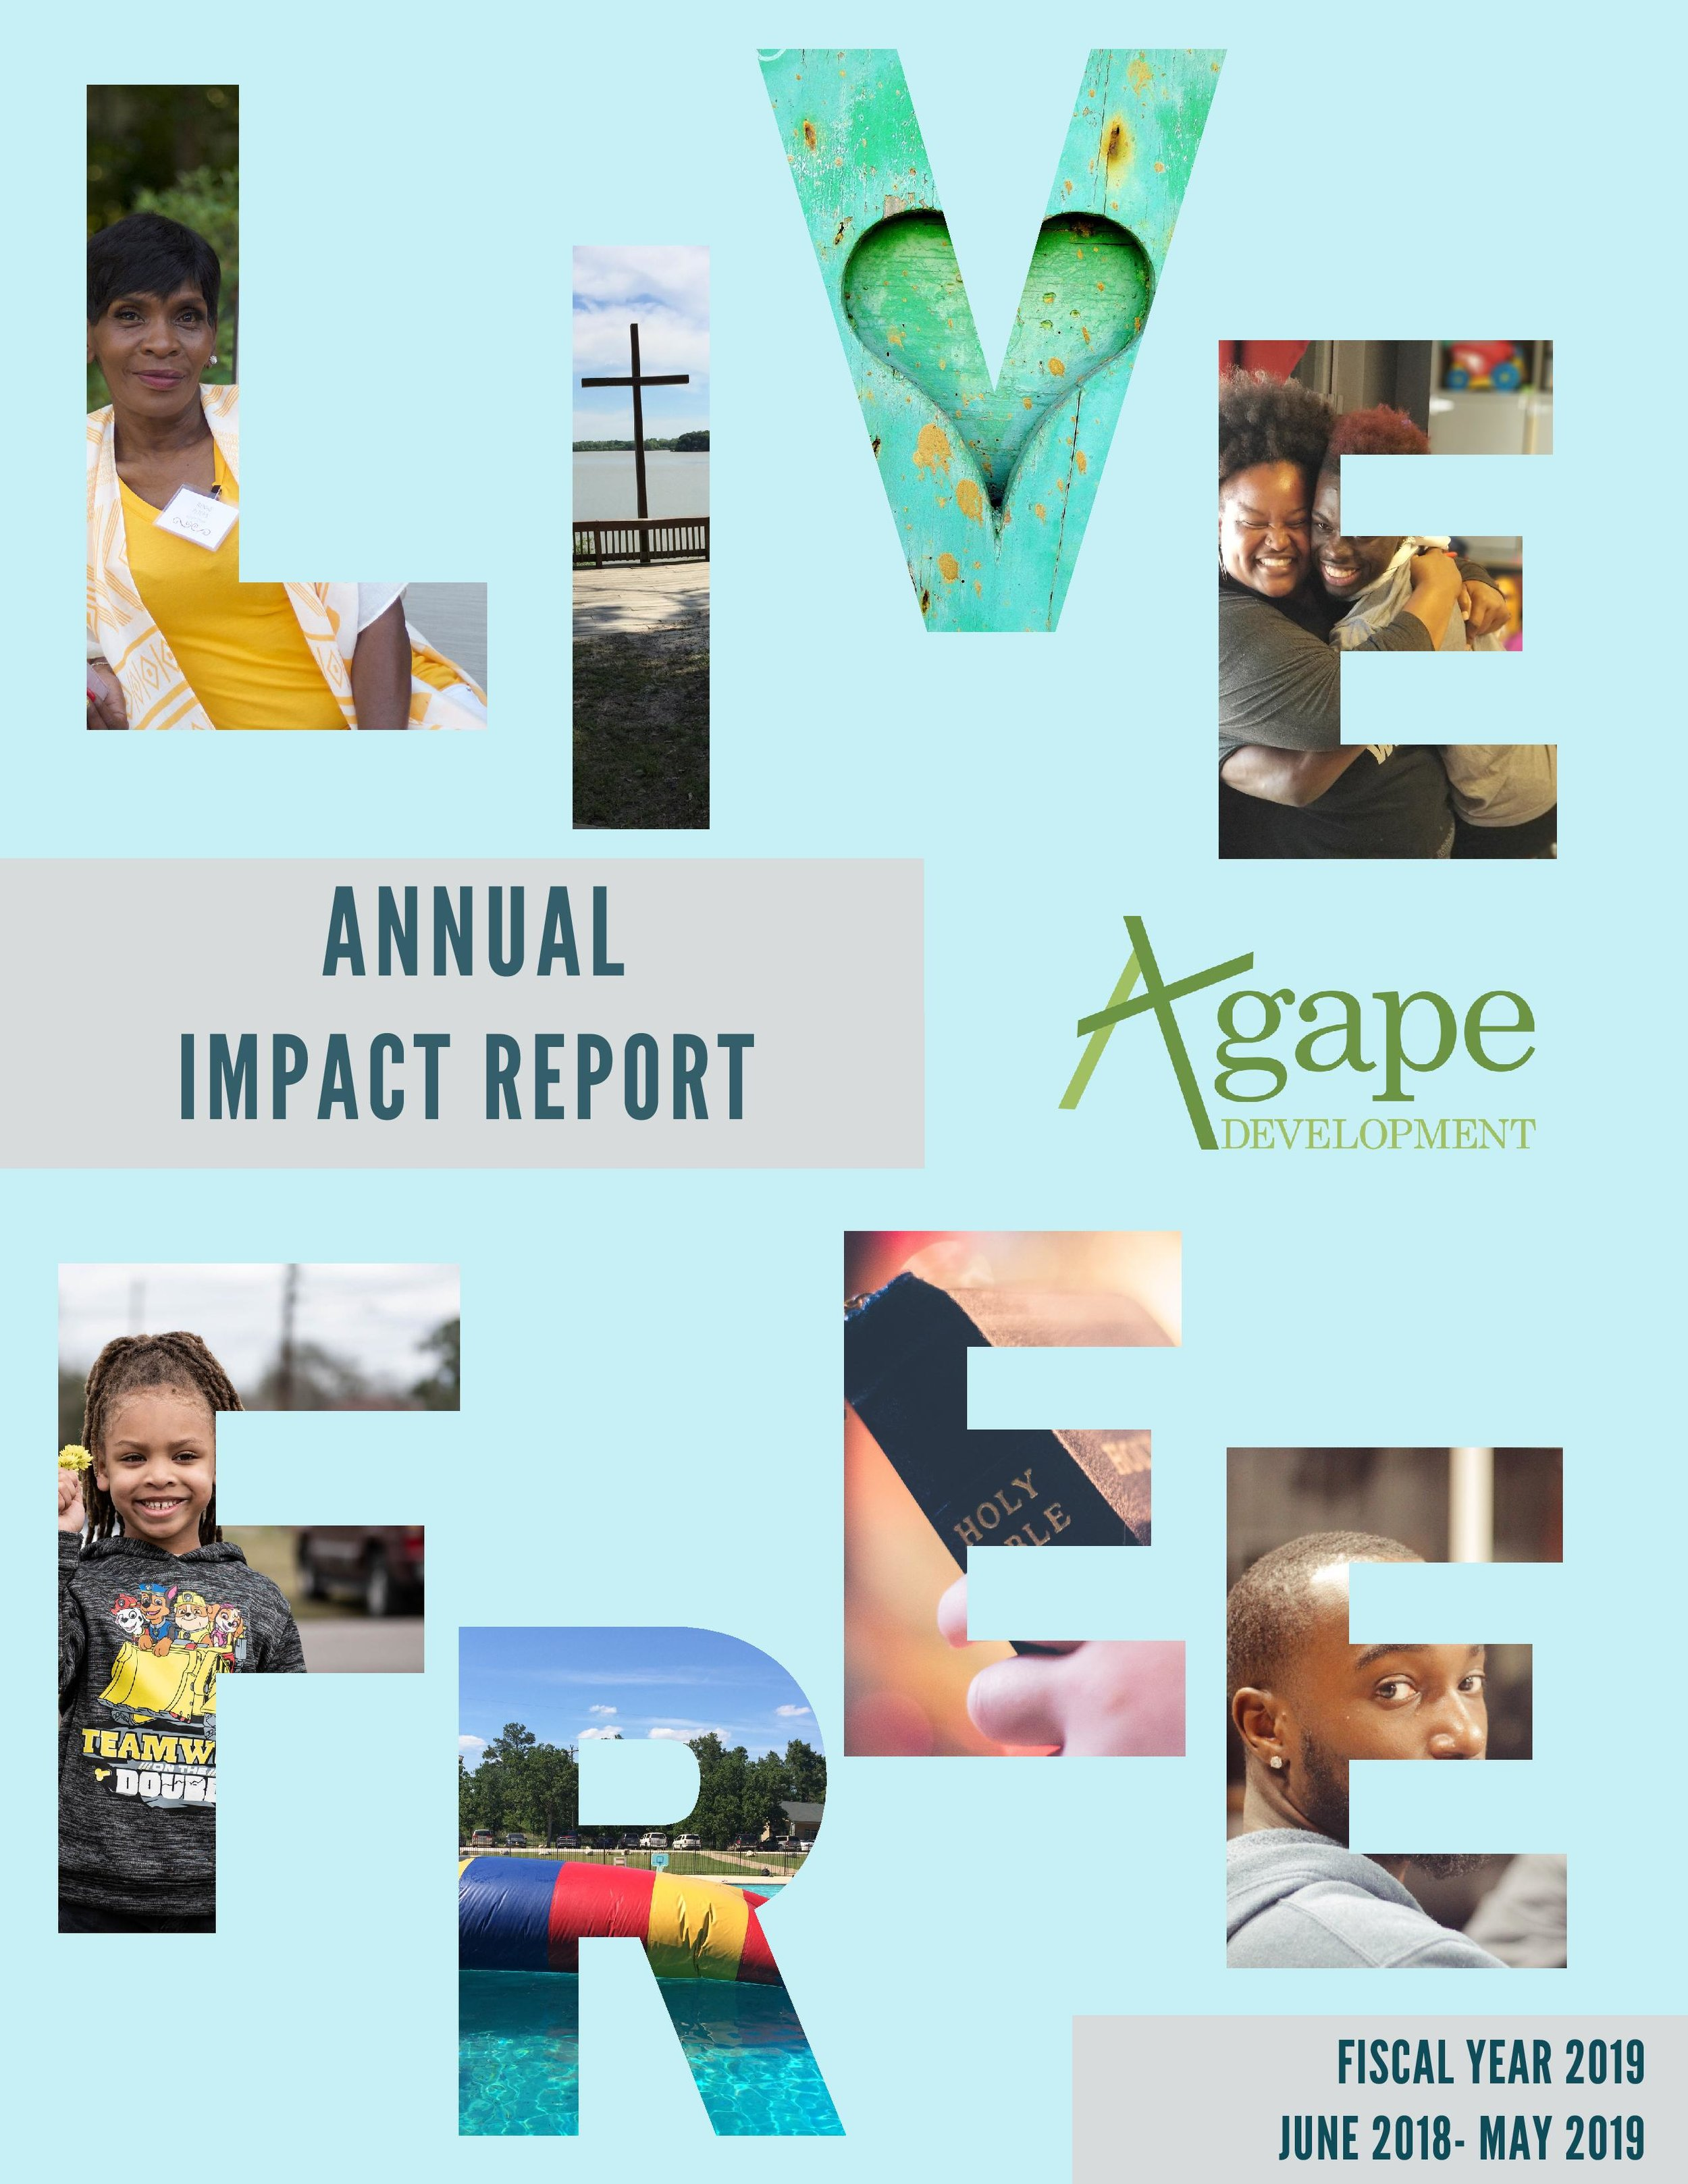 _2019 Impact Report  Shareable-1-page-001.jpg